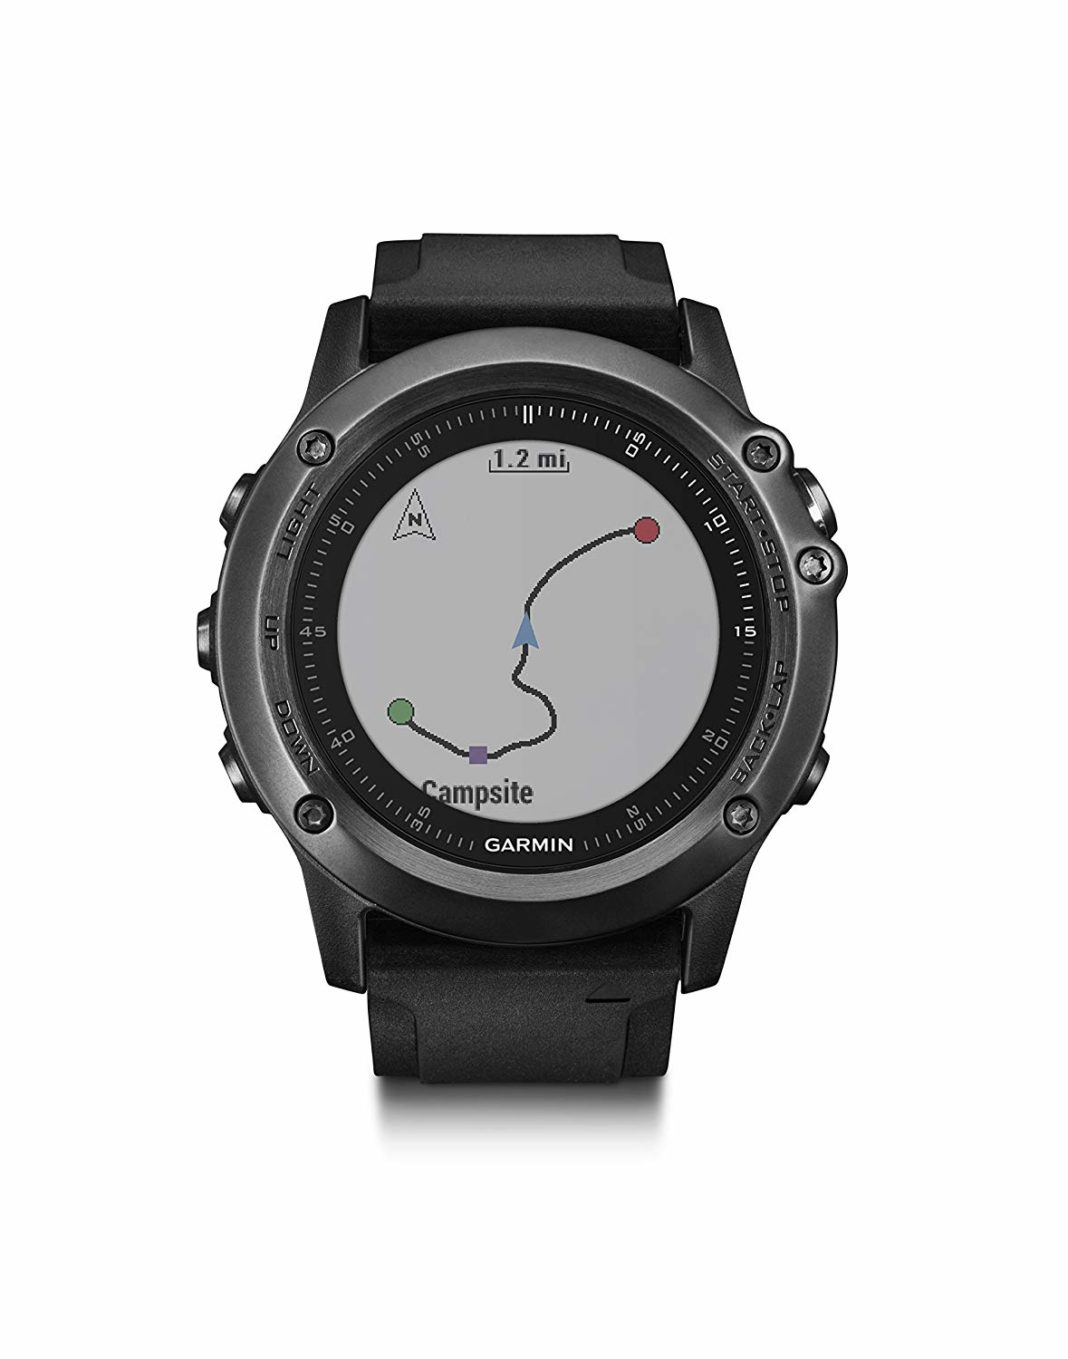 Garmin Fenix 3 HR - Battery Life